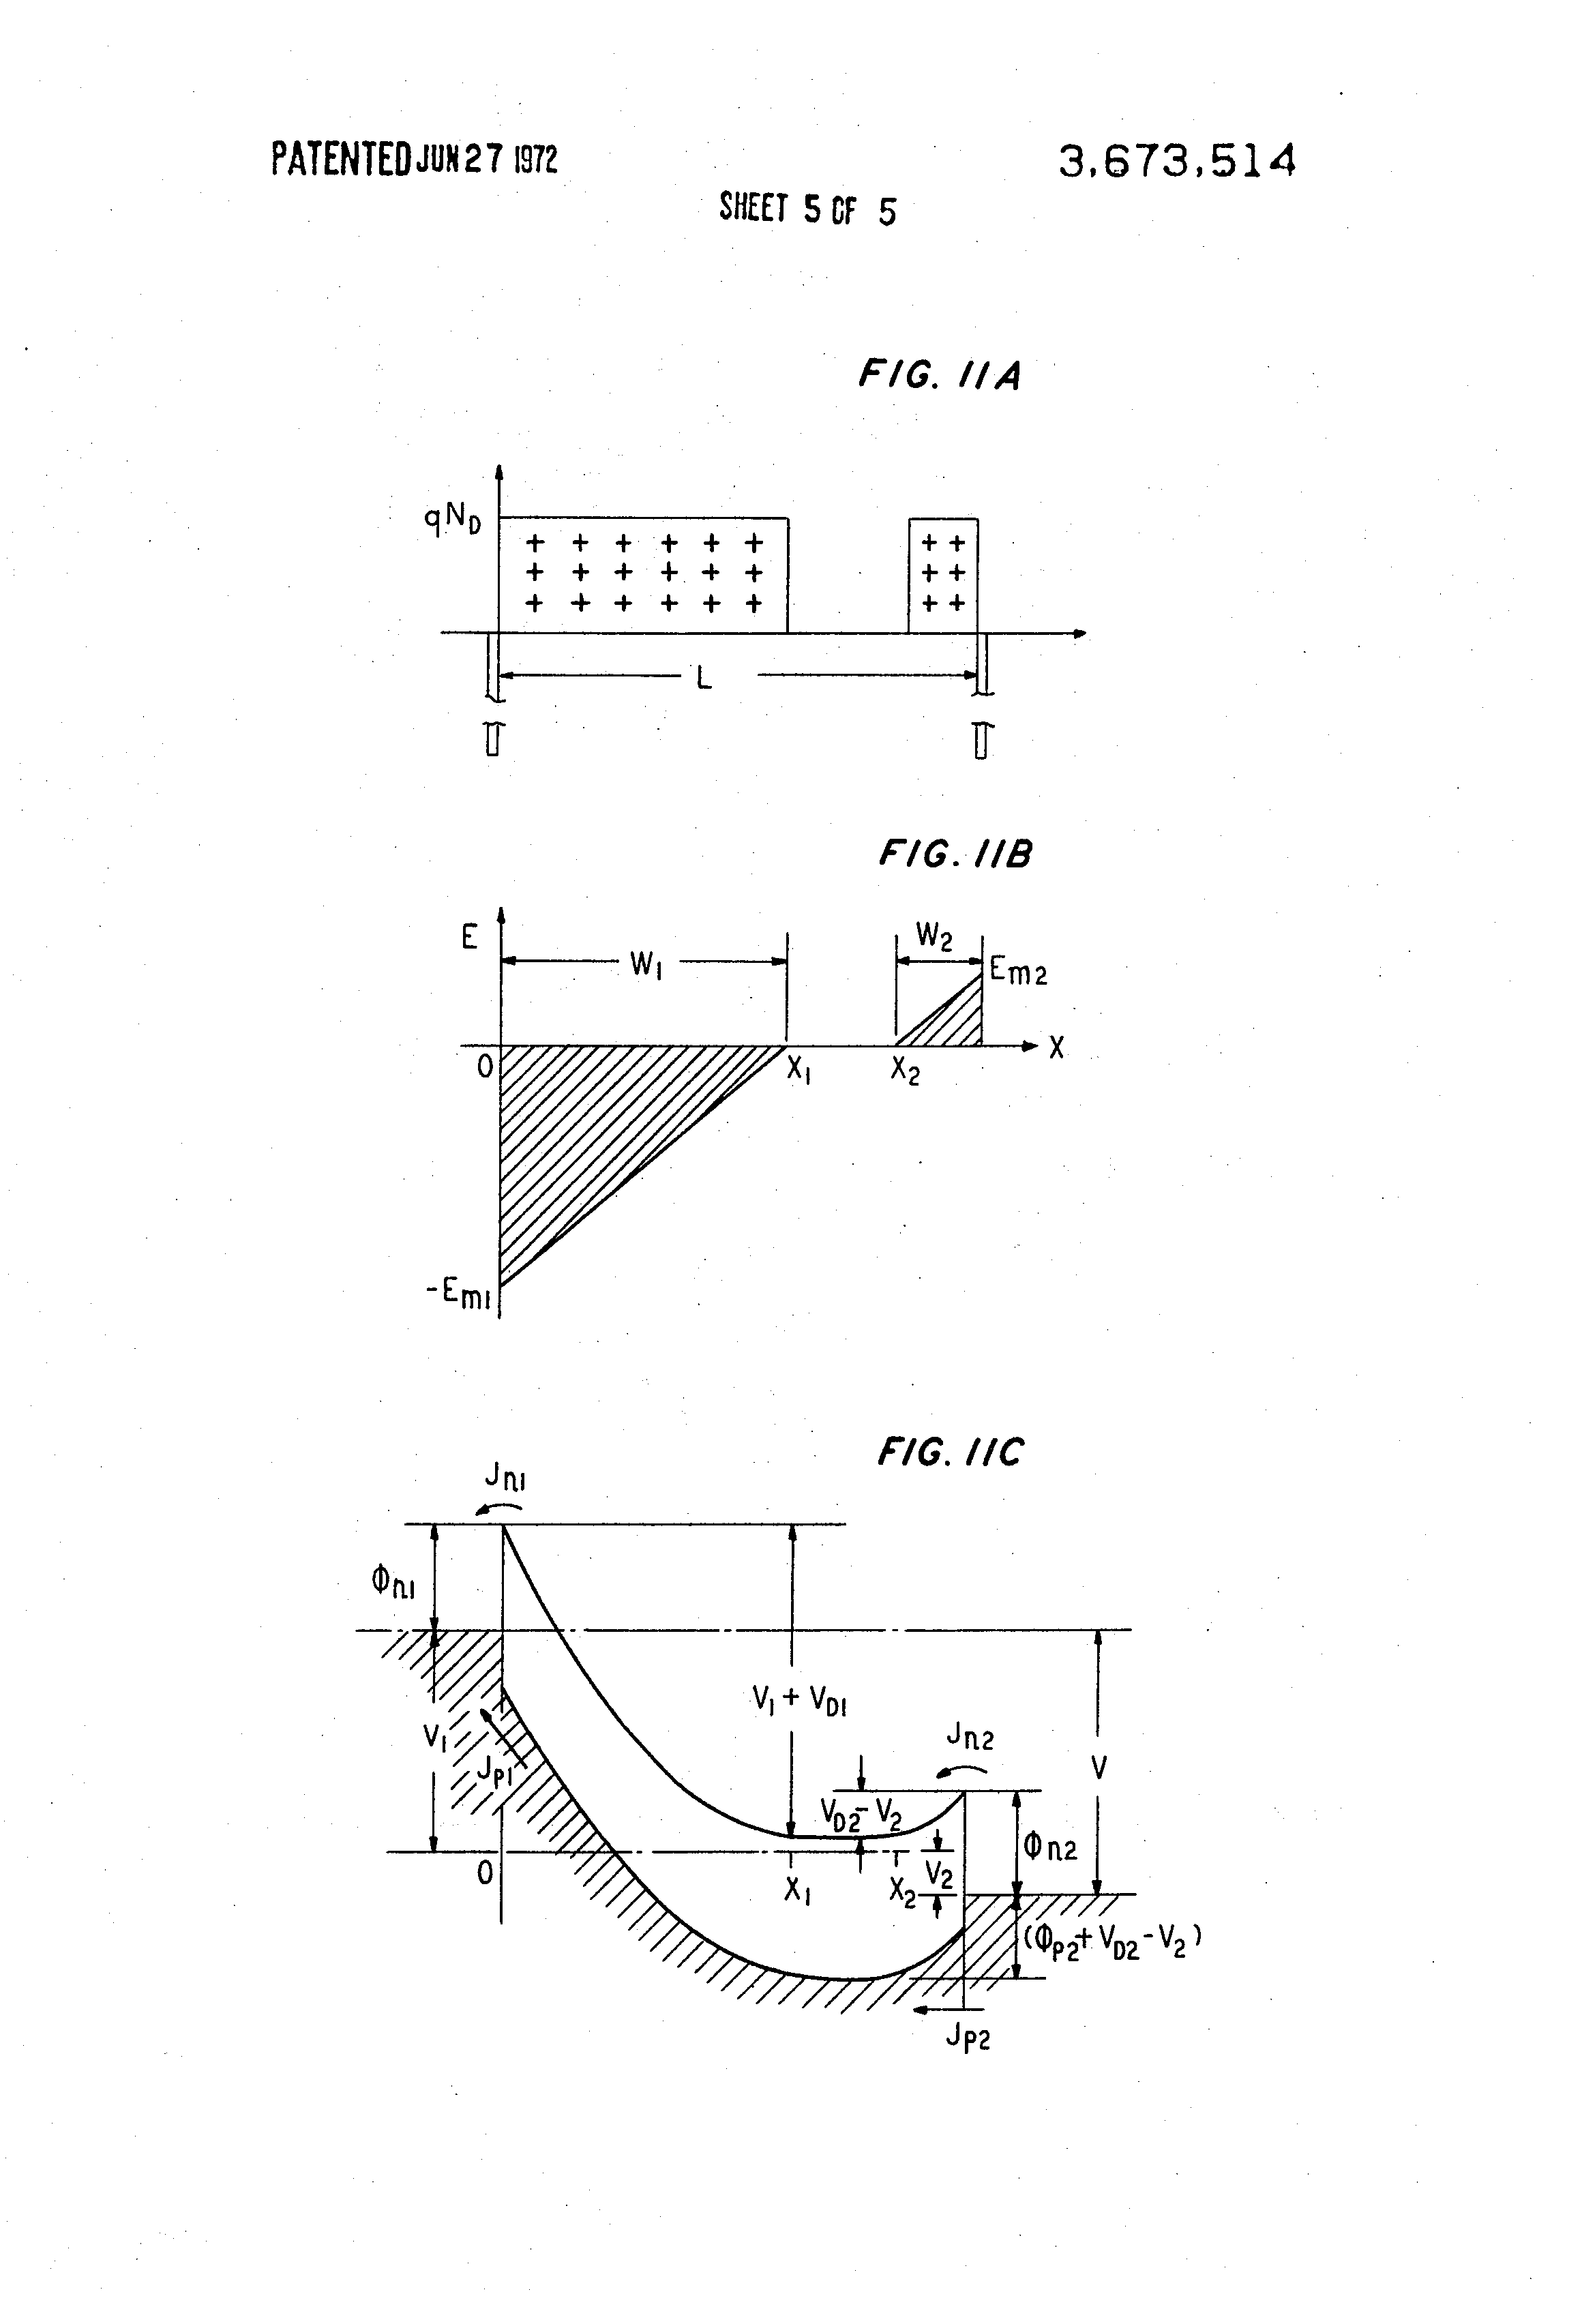 Brevet Us3673514 Schottky Barrier Transit Time Negative Resistance Diode Circuits Patent Drawing